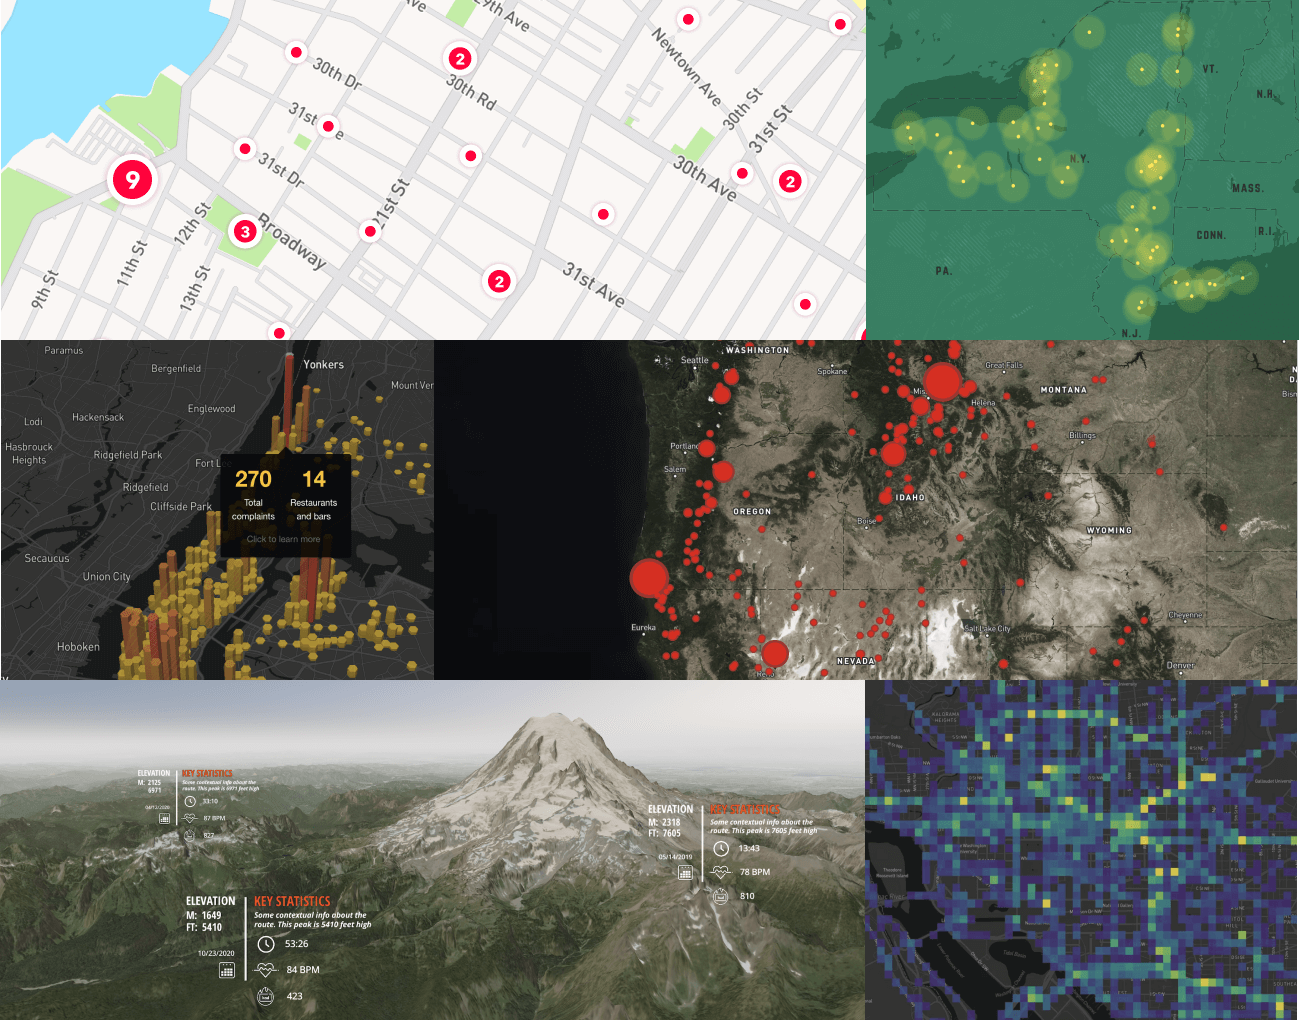 Mapbox GL JS gallery of map images